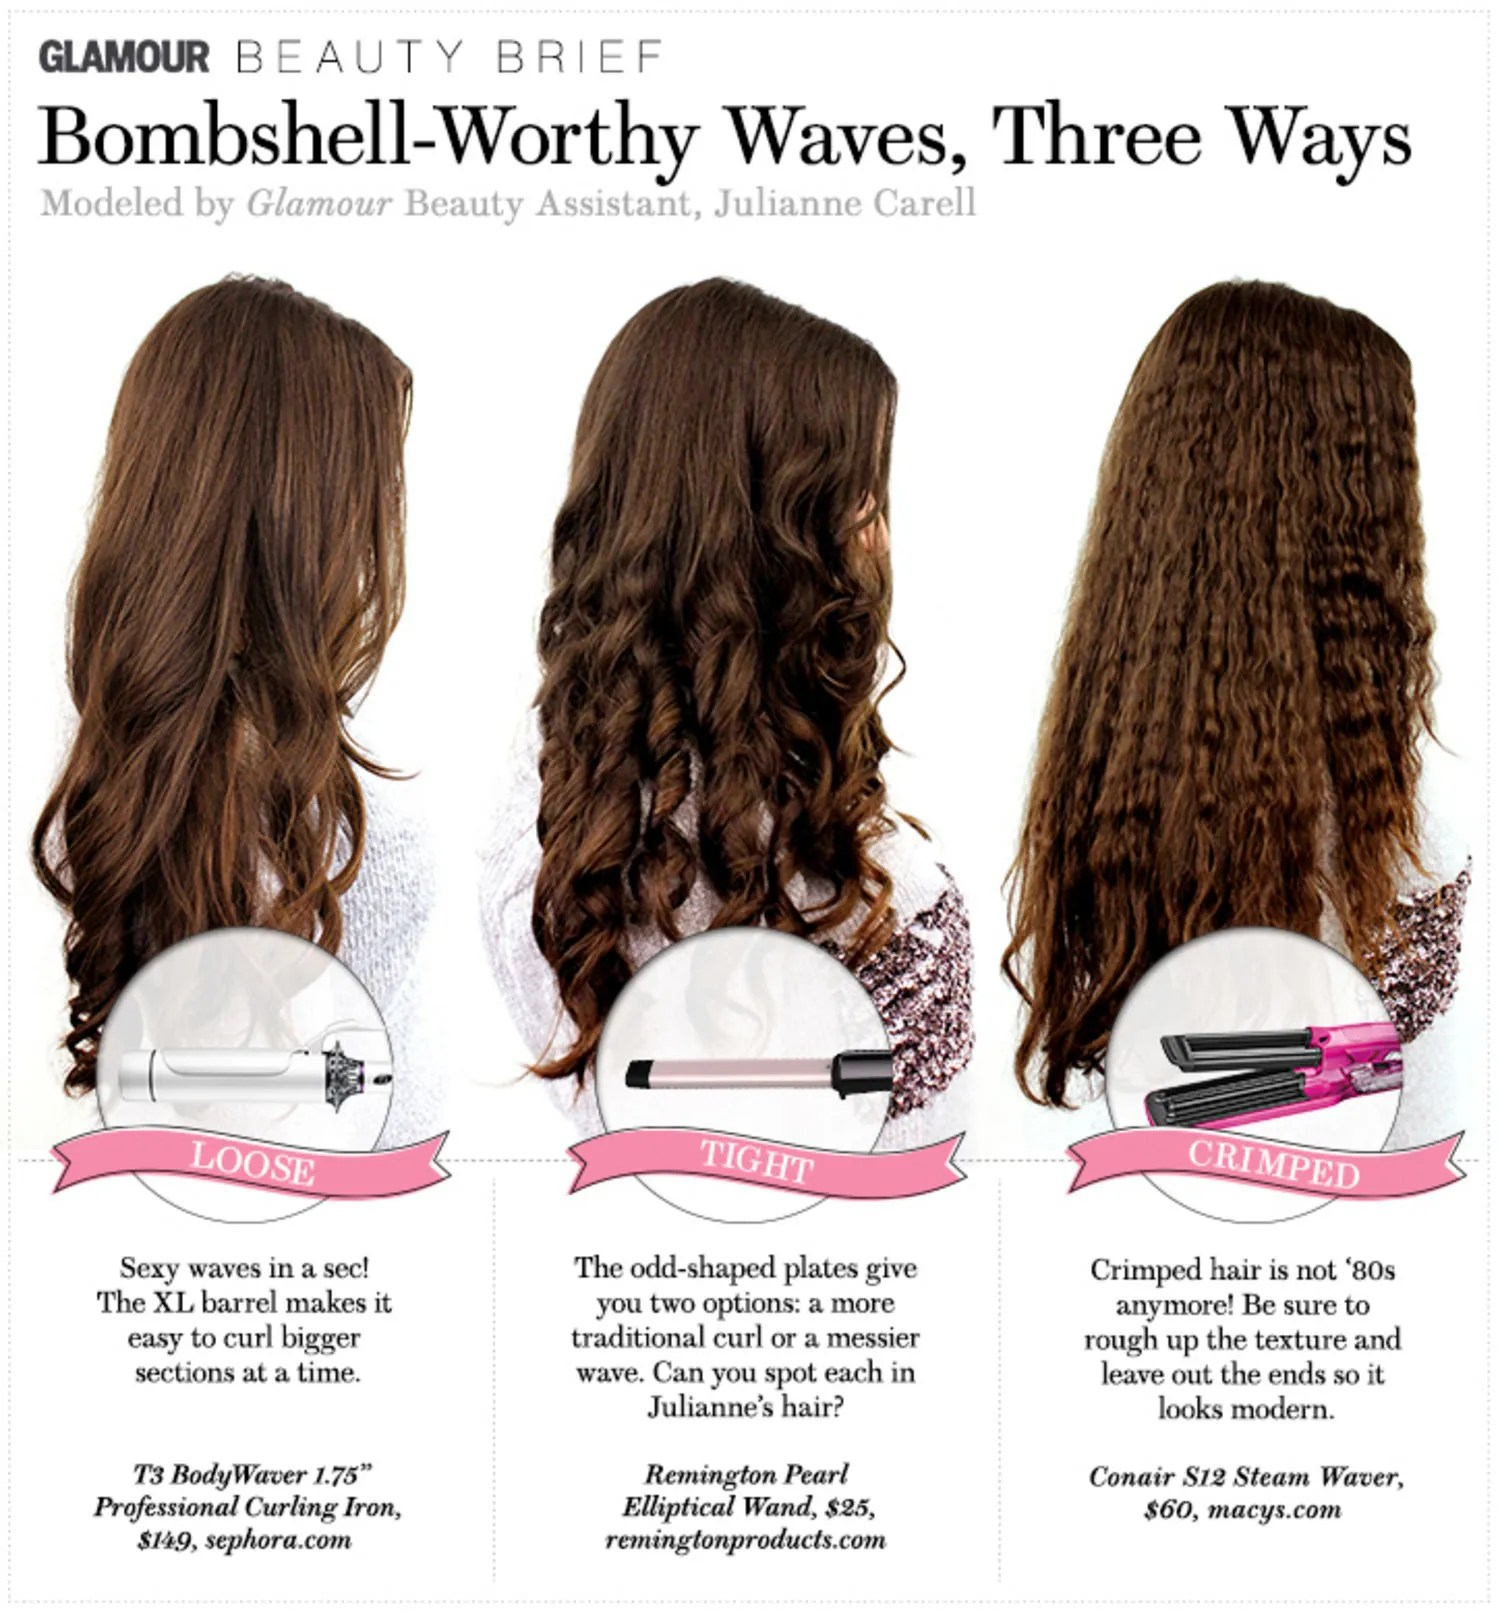 Hair How To Bombshell Worthy Waves Three Ways Glamour